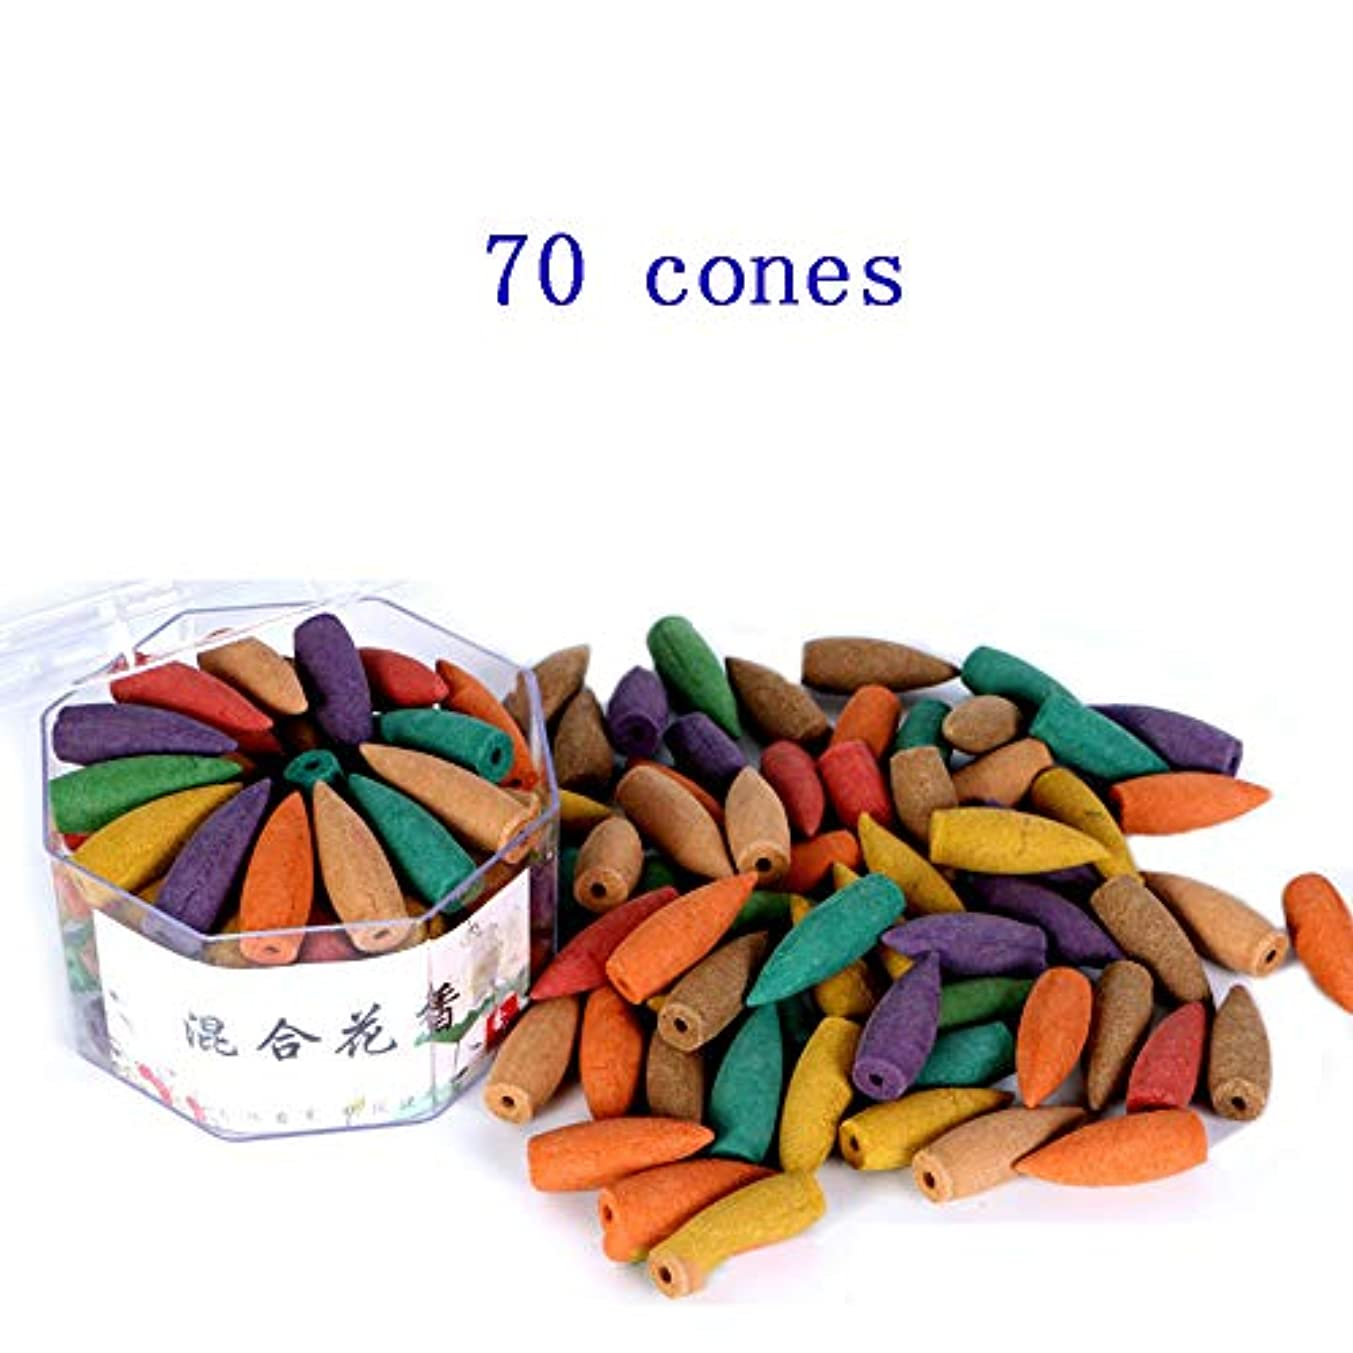 給料喜劇鋸歯状(In-70mixed) - Corcio 70pcs/box Lengthened Cone Tower Incense Backflow Incense Waterfall Cones for Incense Burner...